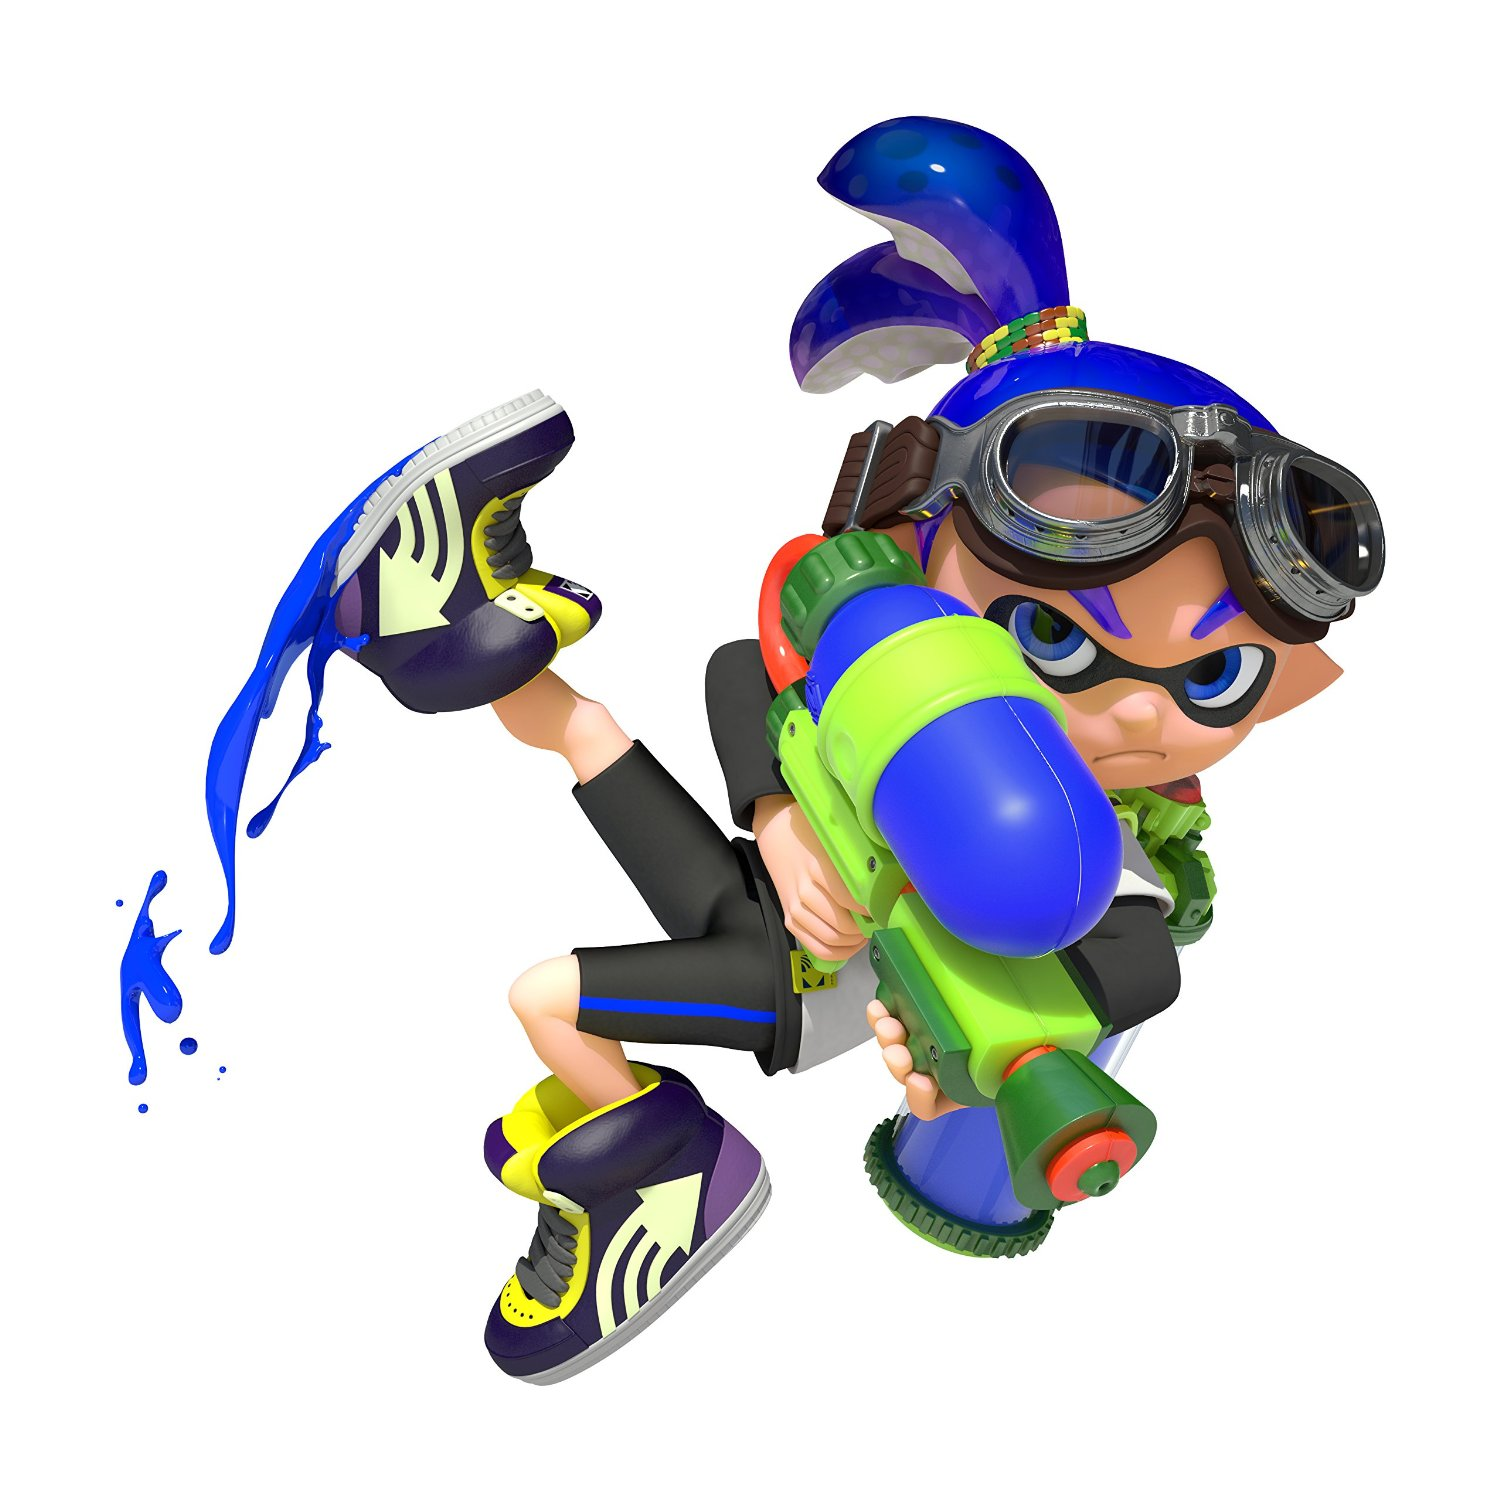 Show Off Your Skills In The Splatoon U.S. Inkling Open Tournament For A Chance To Win A Trip To E3 2017